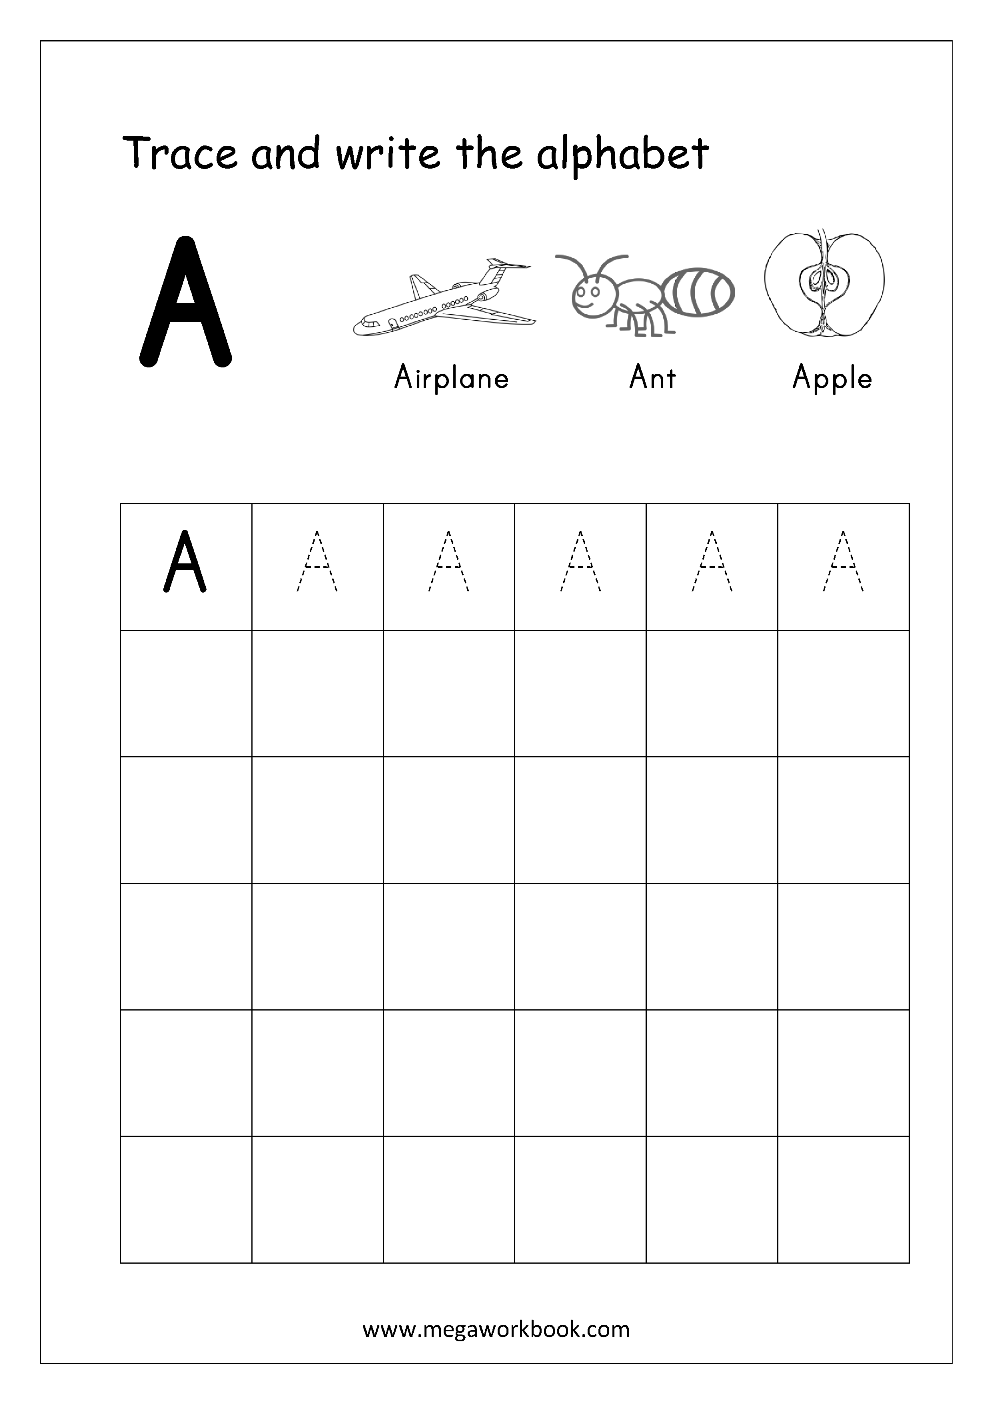 Alphabet Writing Worksheets : Free english worksheets alphabet writing capital